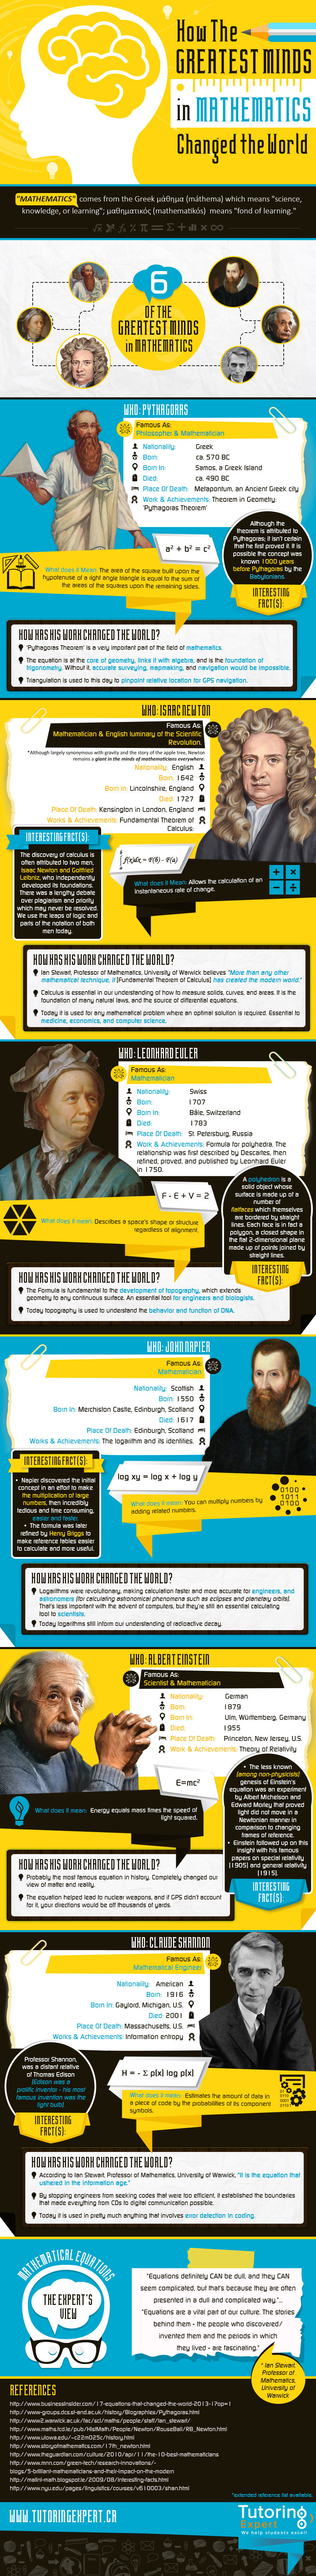 Infographic: How The Greatest Minds in Mathematics Changed the World